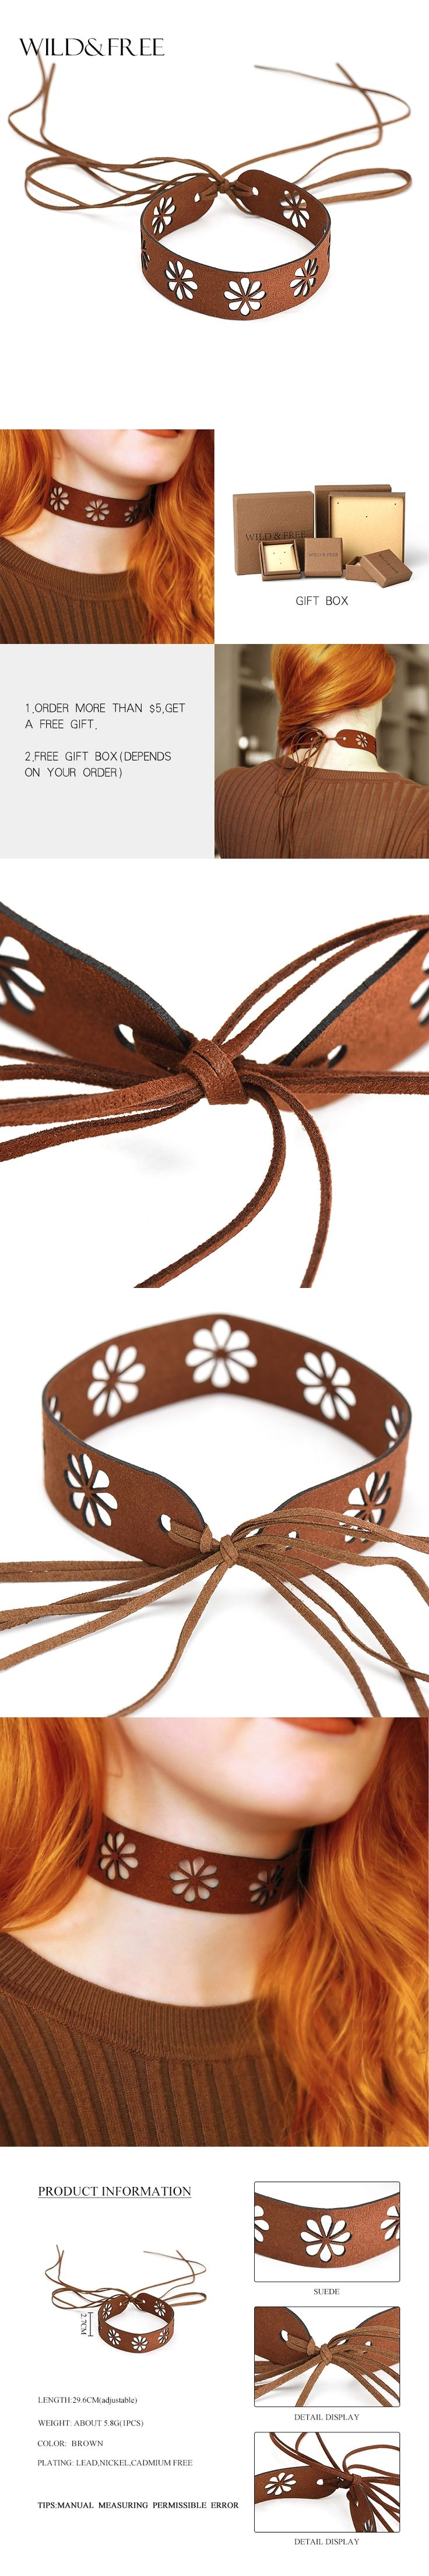 WILD & FREE Women Punk Gothic Black Brown Suede Choker Necklace Vintage Tassel Hollow Out Flower Choker Necklace Jewelry Party